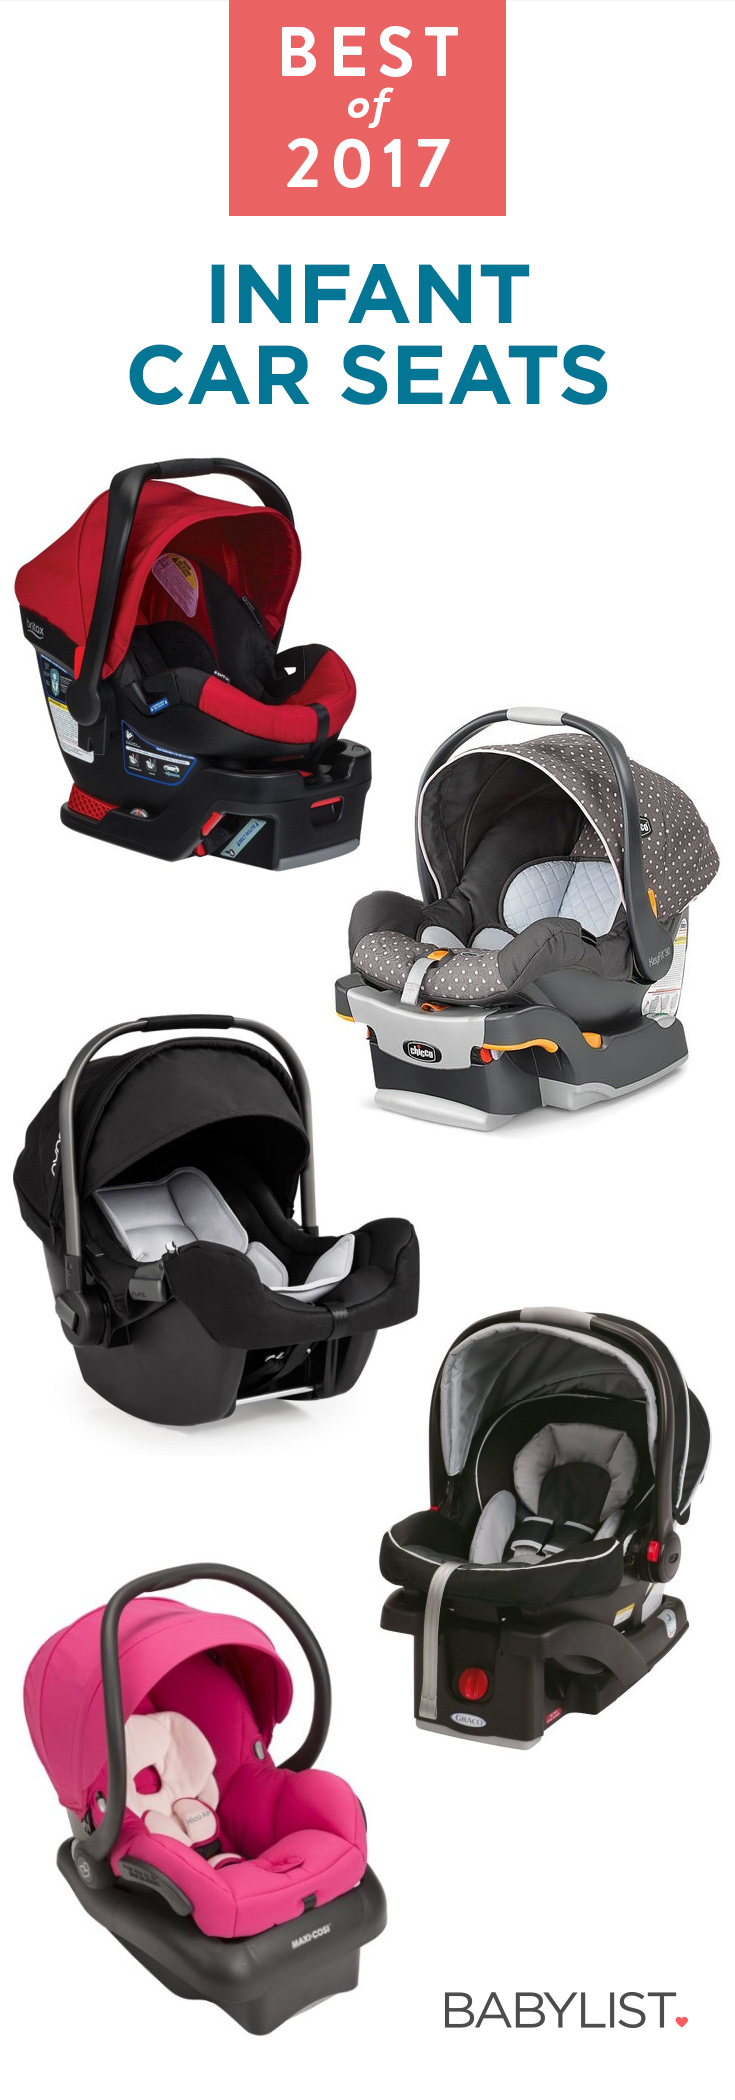 Find the easiest way to transport your little one through a big world.